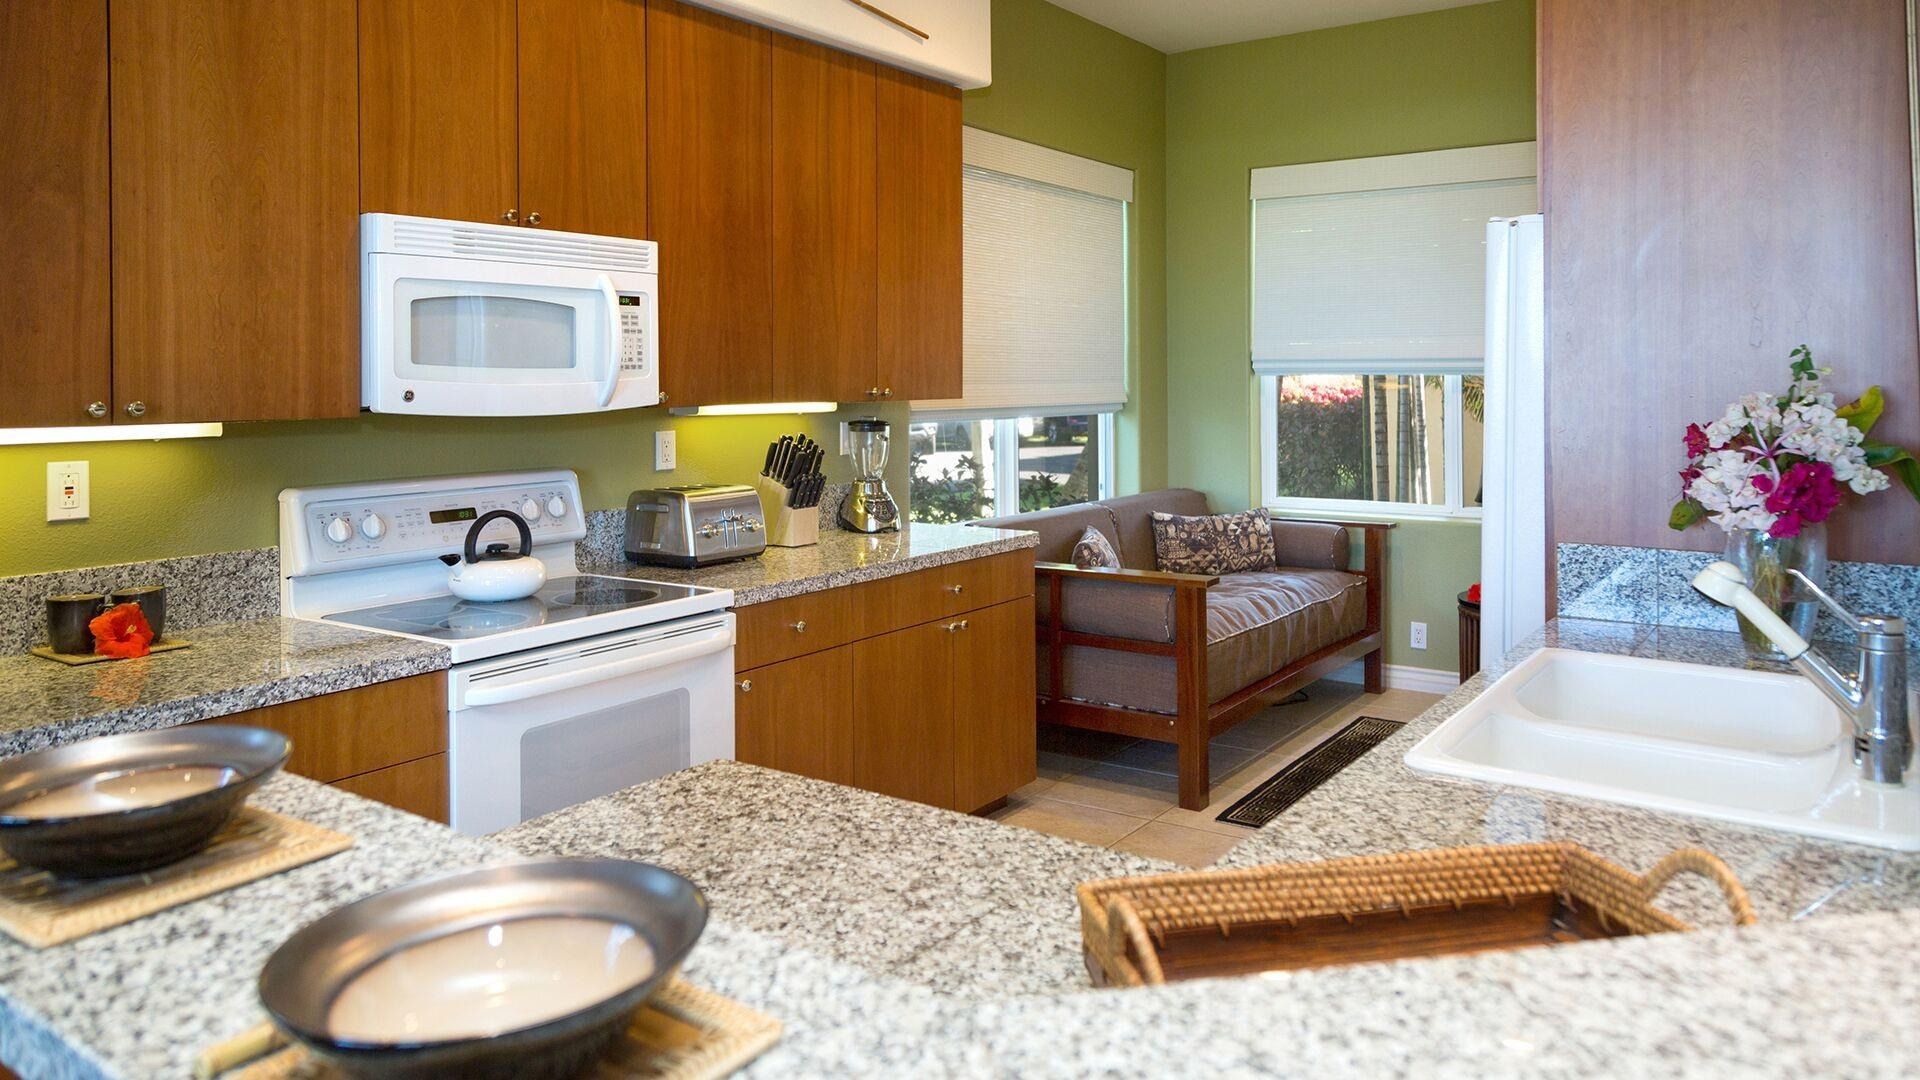 The gourmet kitchen is very spacious and provides all the items you need to make meals while on vacation.